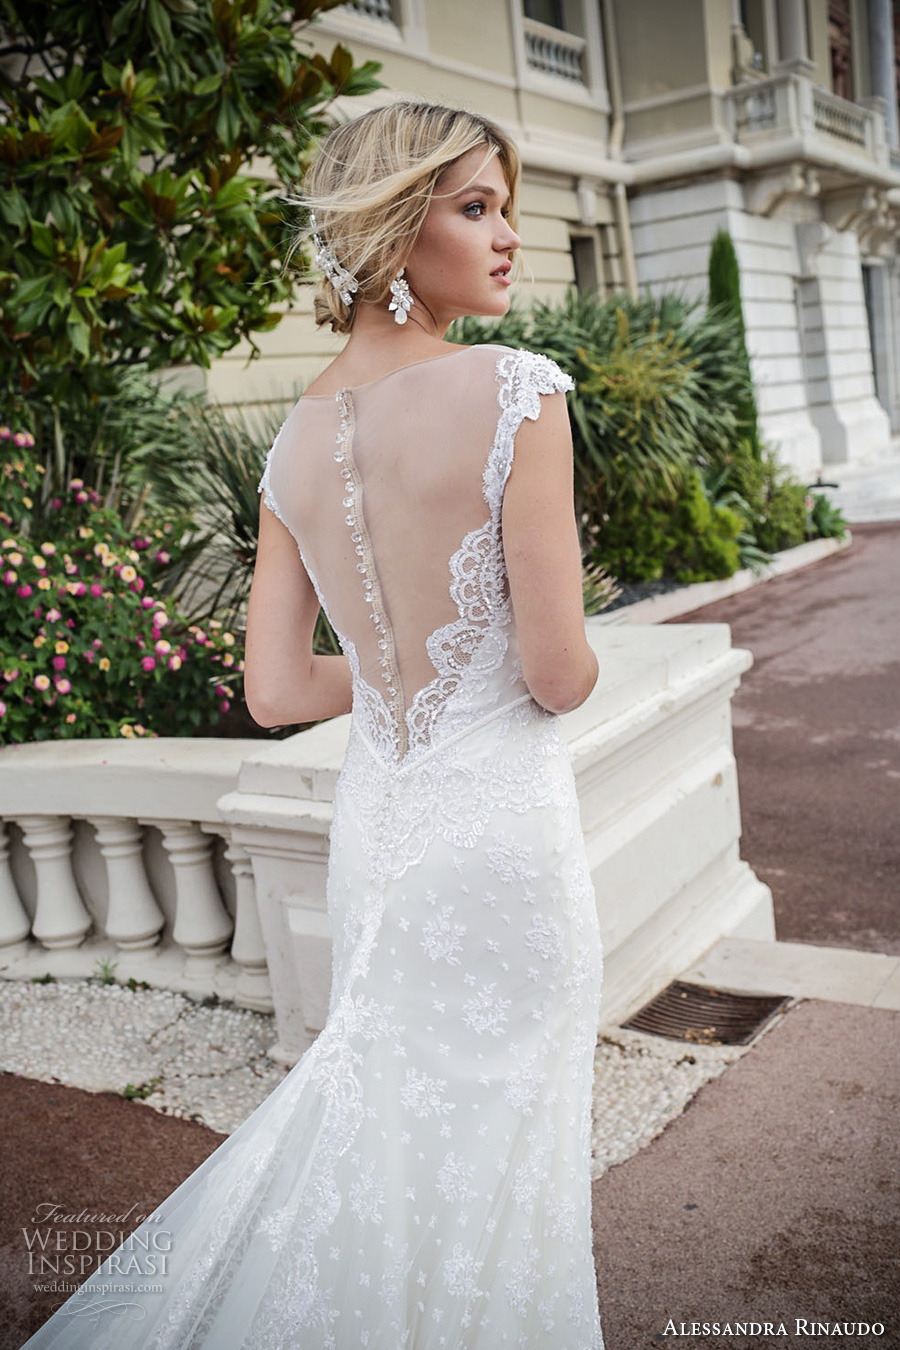 alessandra rinaudo 2017 bridal cap sleeves illusion boat deep plunging neckline full embellishment elegant sheath wedding dress illusion back royal long train (3) zbv